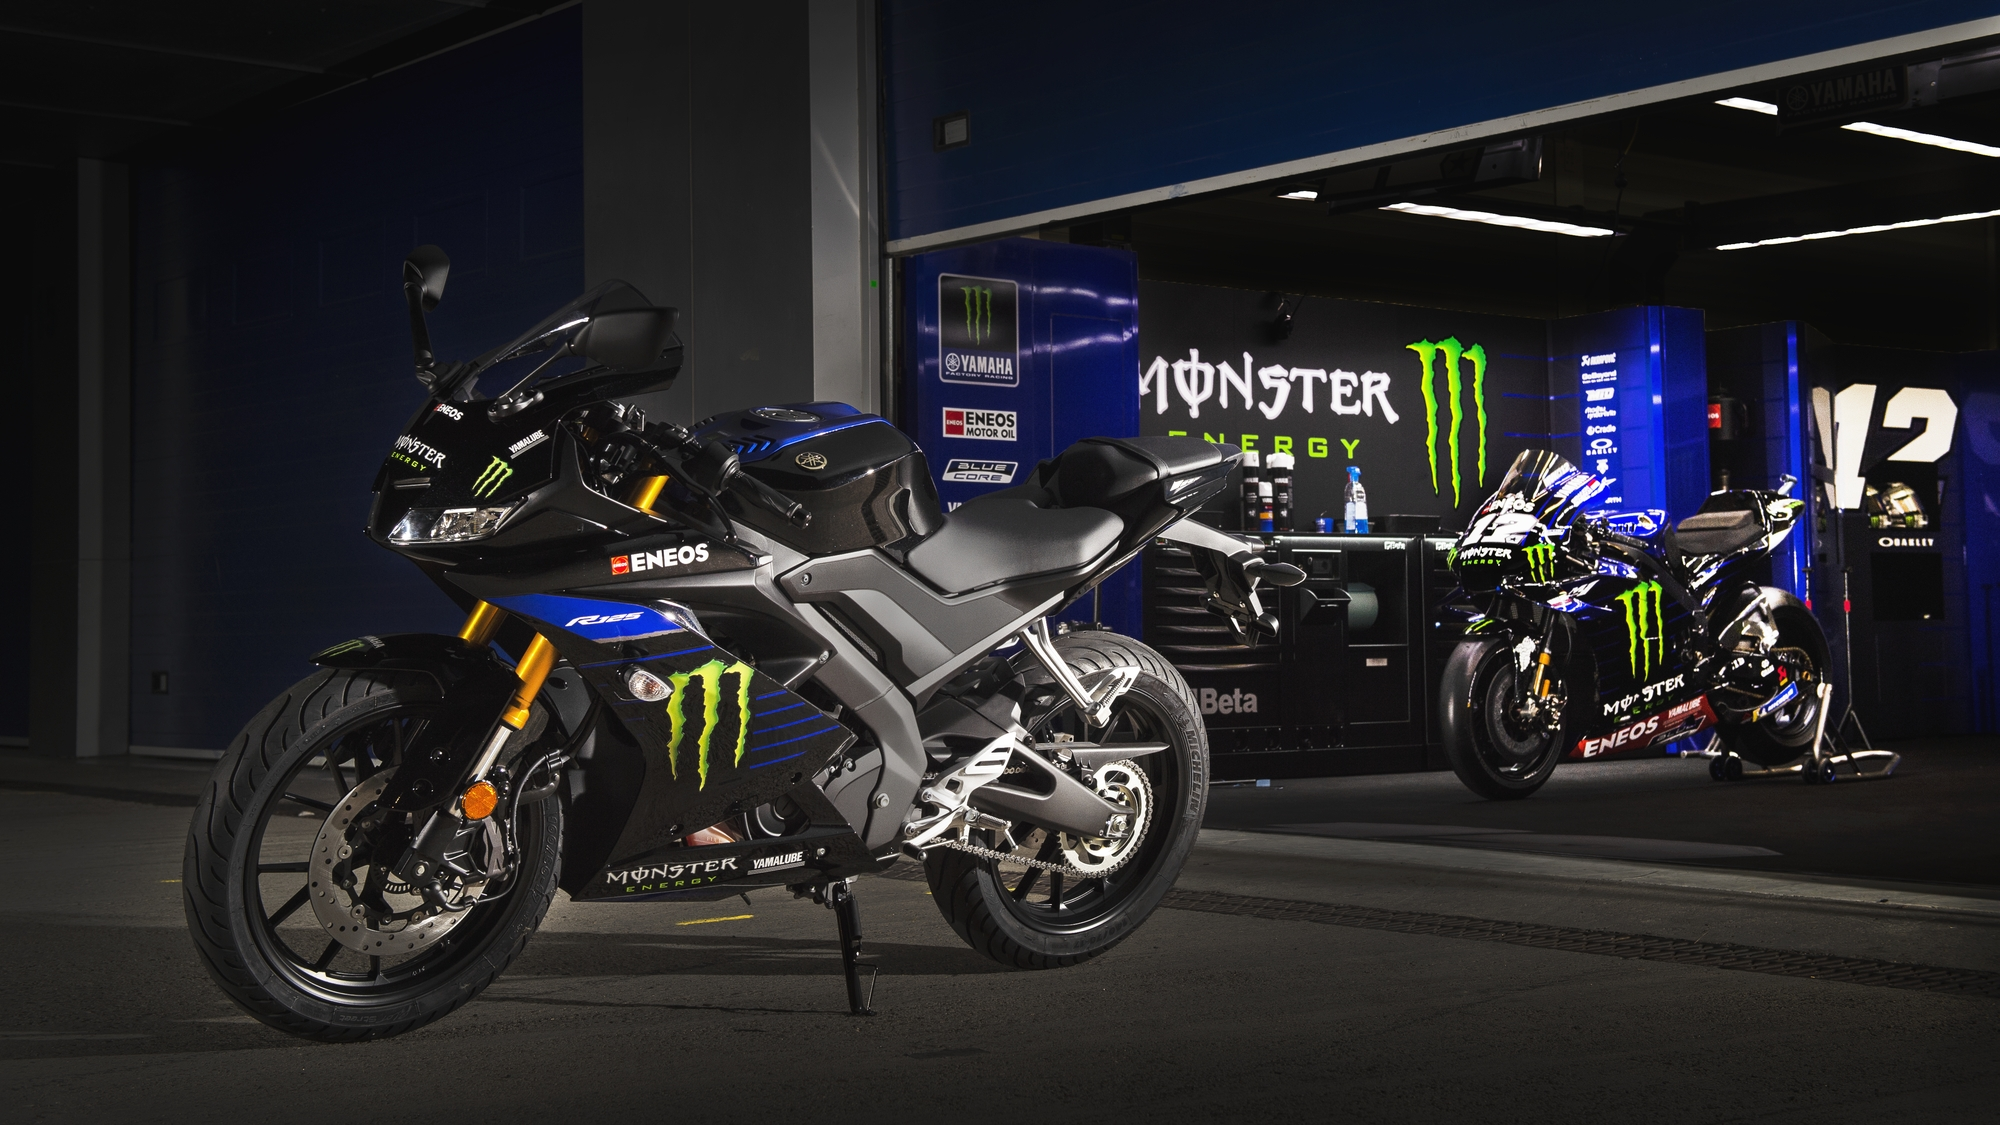 Yzf R125 Monster Energy Yamaha Motogp Edition Motorcycles Yamaha